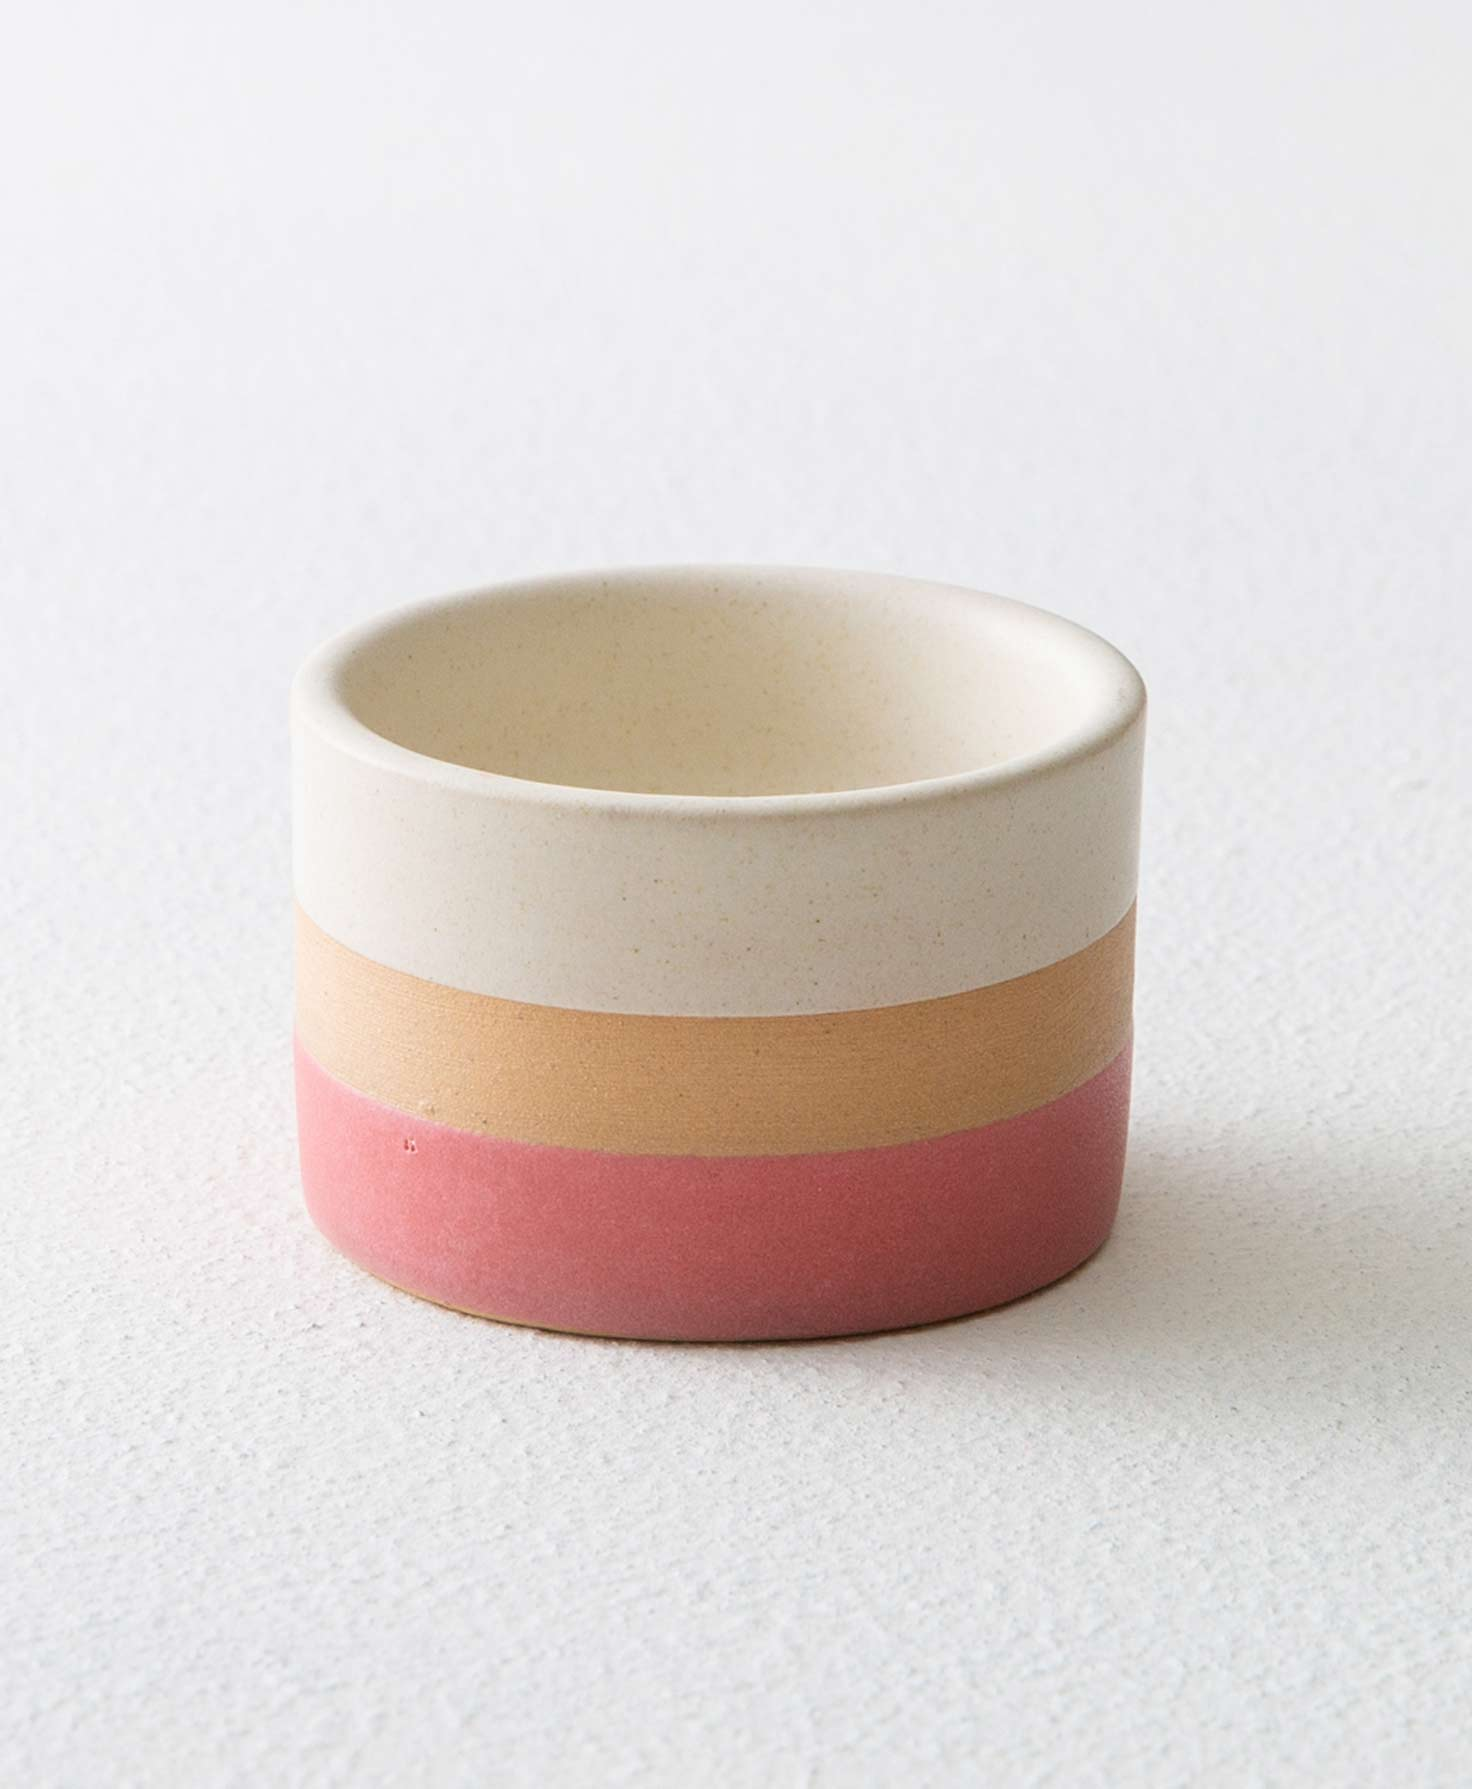 The Banded Stone Tealight Holder in Pink sits on a white surface. It is made of smooth stoneware that forms a short, rounded vessel. The stoneware is divided into three different horizontal stripes of color that wrap around the vessel. The bottom stripe is a rosy pink, the middle stripe is tan, and the top stripe is cream.